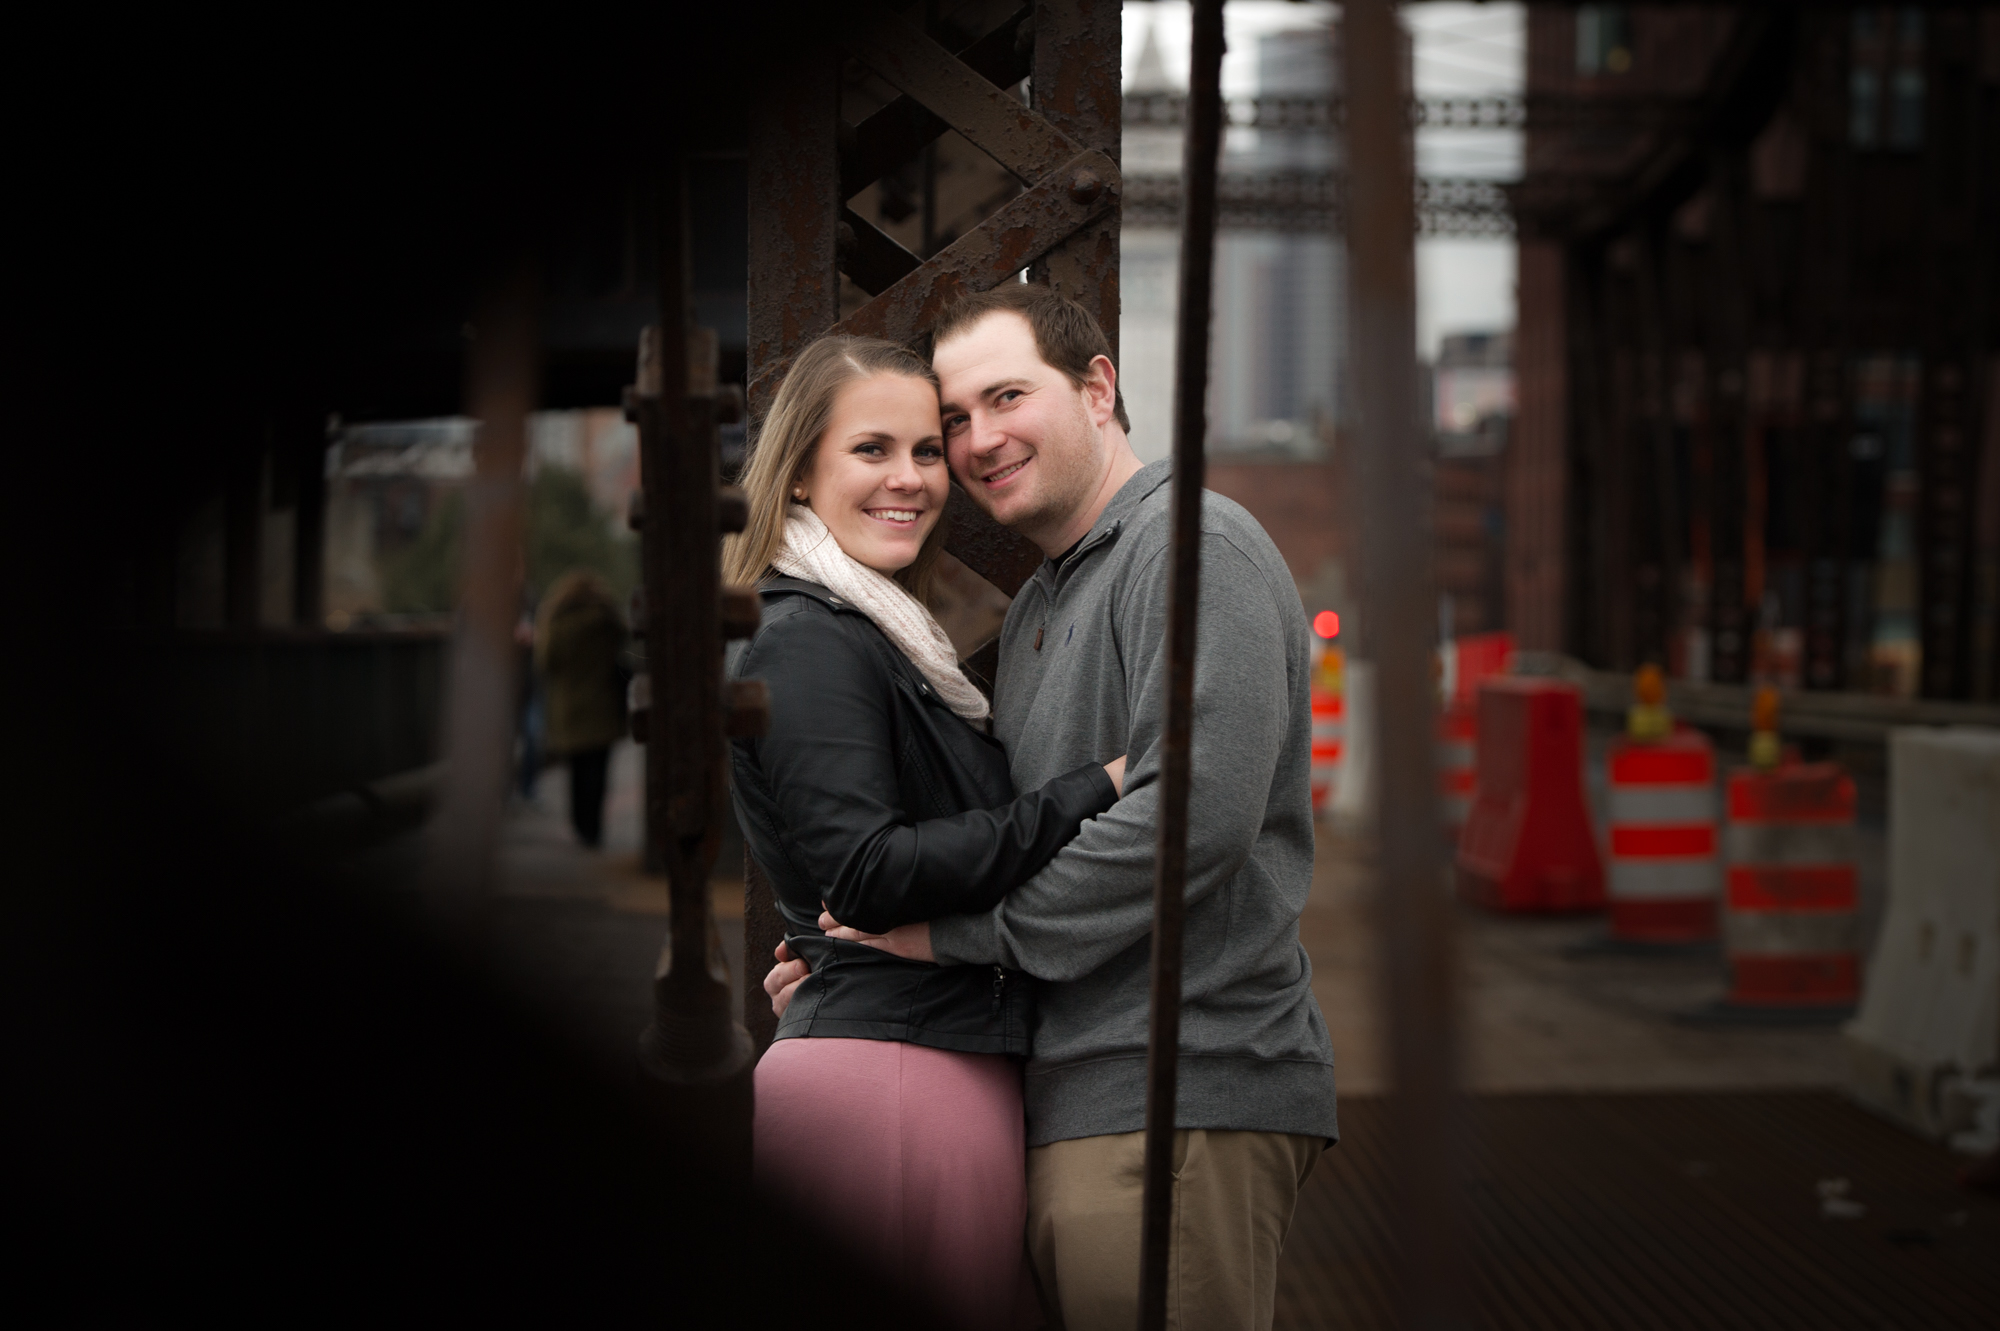 The Charlestown Bridge - a walk that Brittany and Michael waled on their first date. The Charlestown Bridge spans the Charles River. As the river's easternmost crossing, the bridge connects the neighborhoods of Charlestown and the North End.